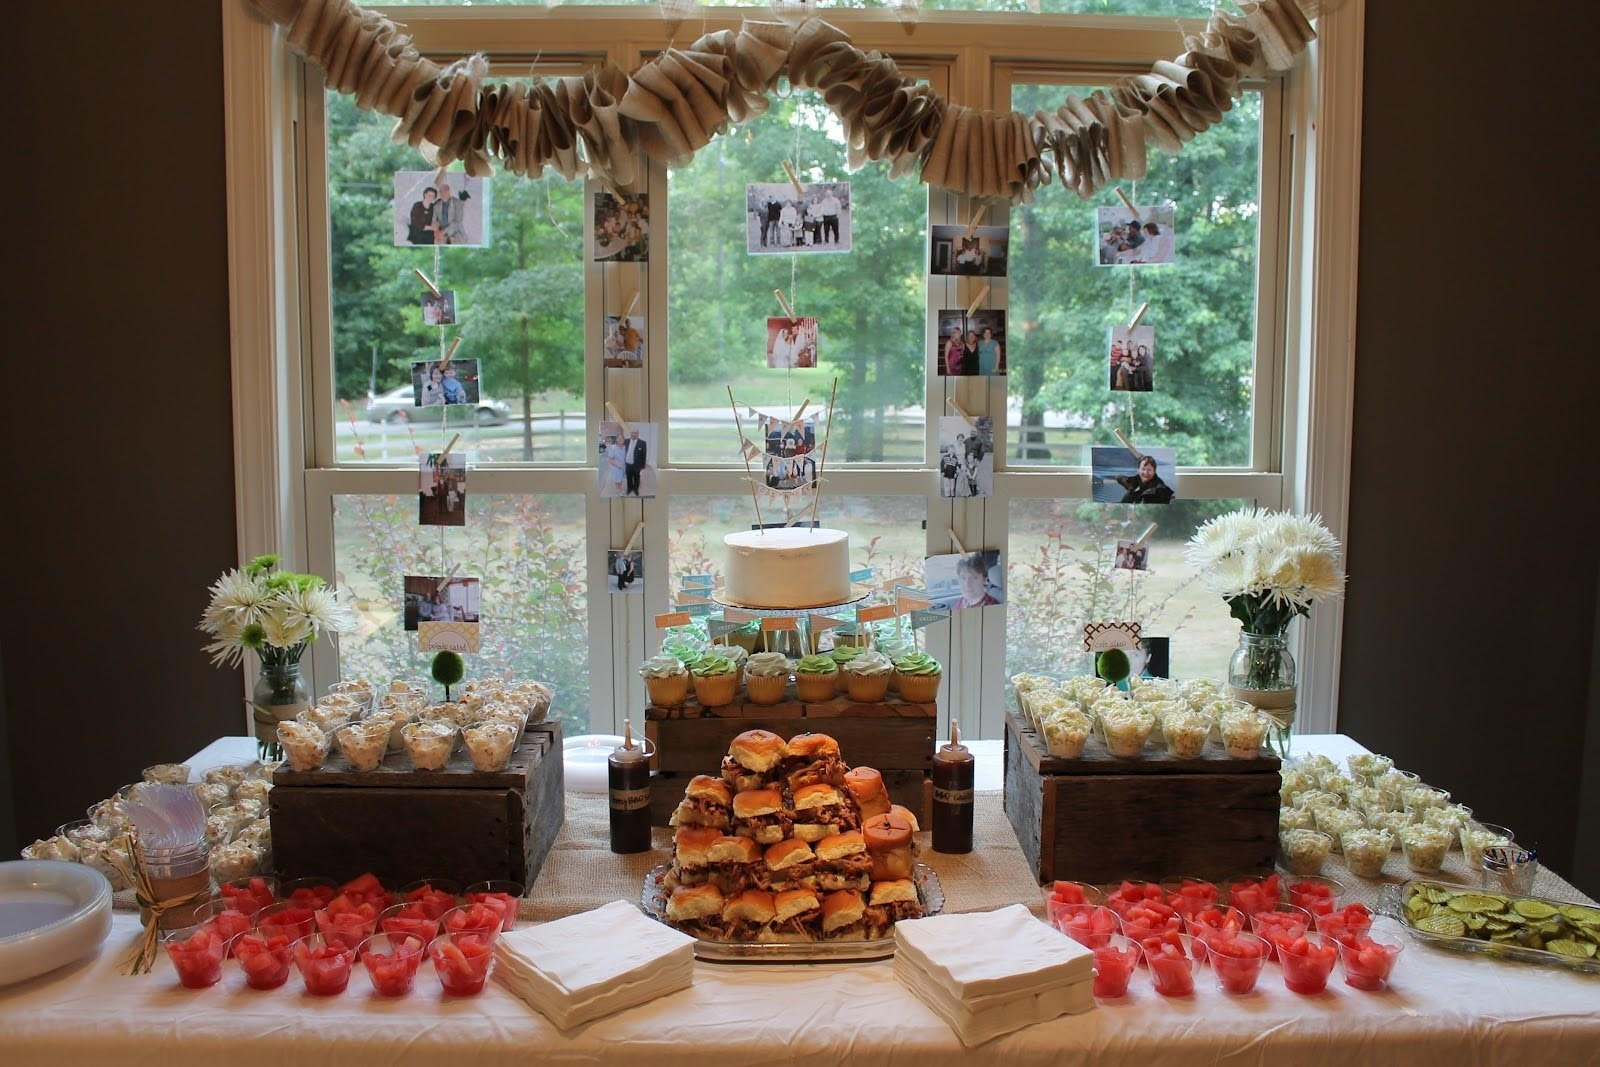 10 Fabulous Party Ideas For Adults At Home birthday party surprise ideas home party ideas